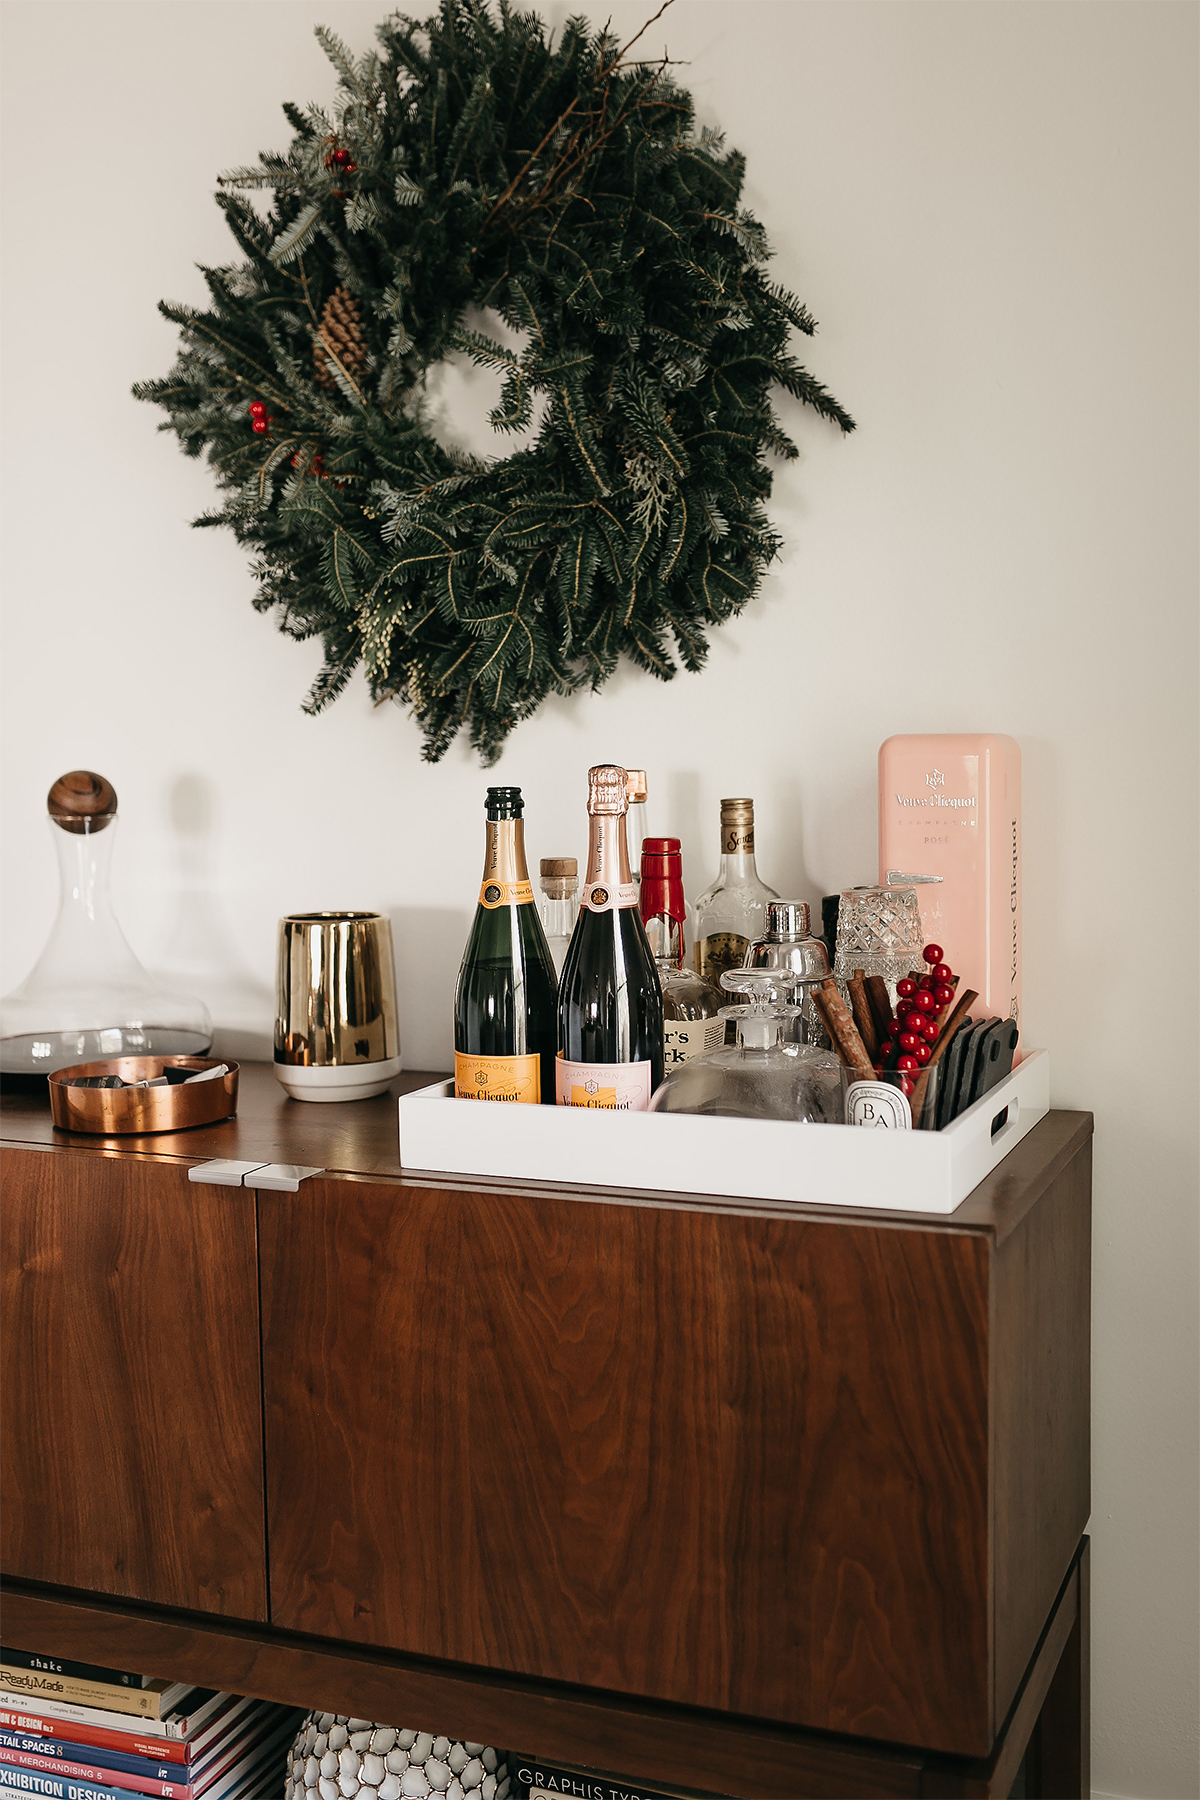 Fashion Jackson Christmas Wreath Bar Cart Bar Tray Veuve Clicquot Champagne